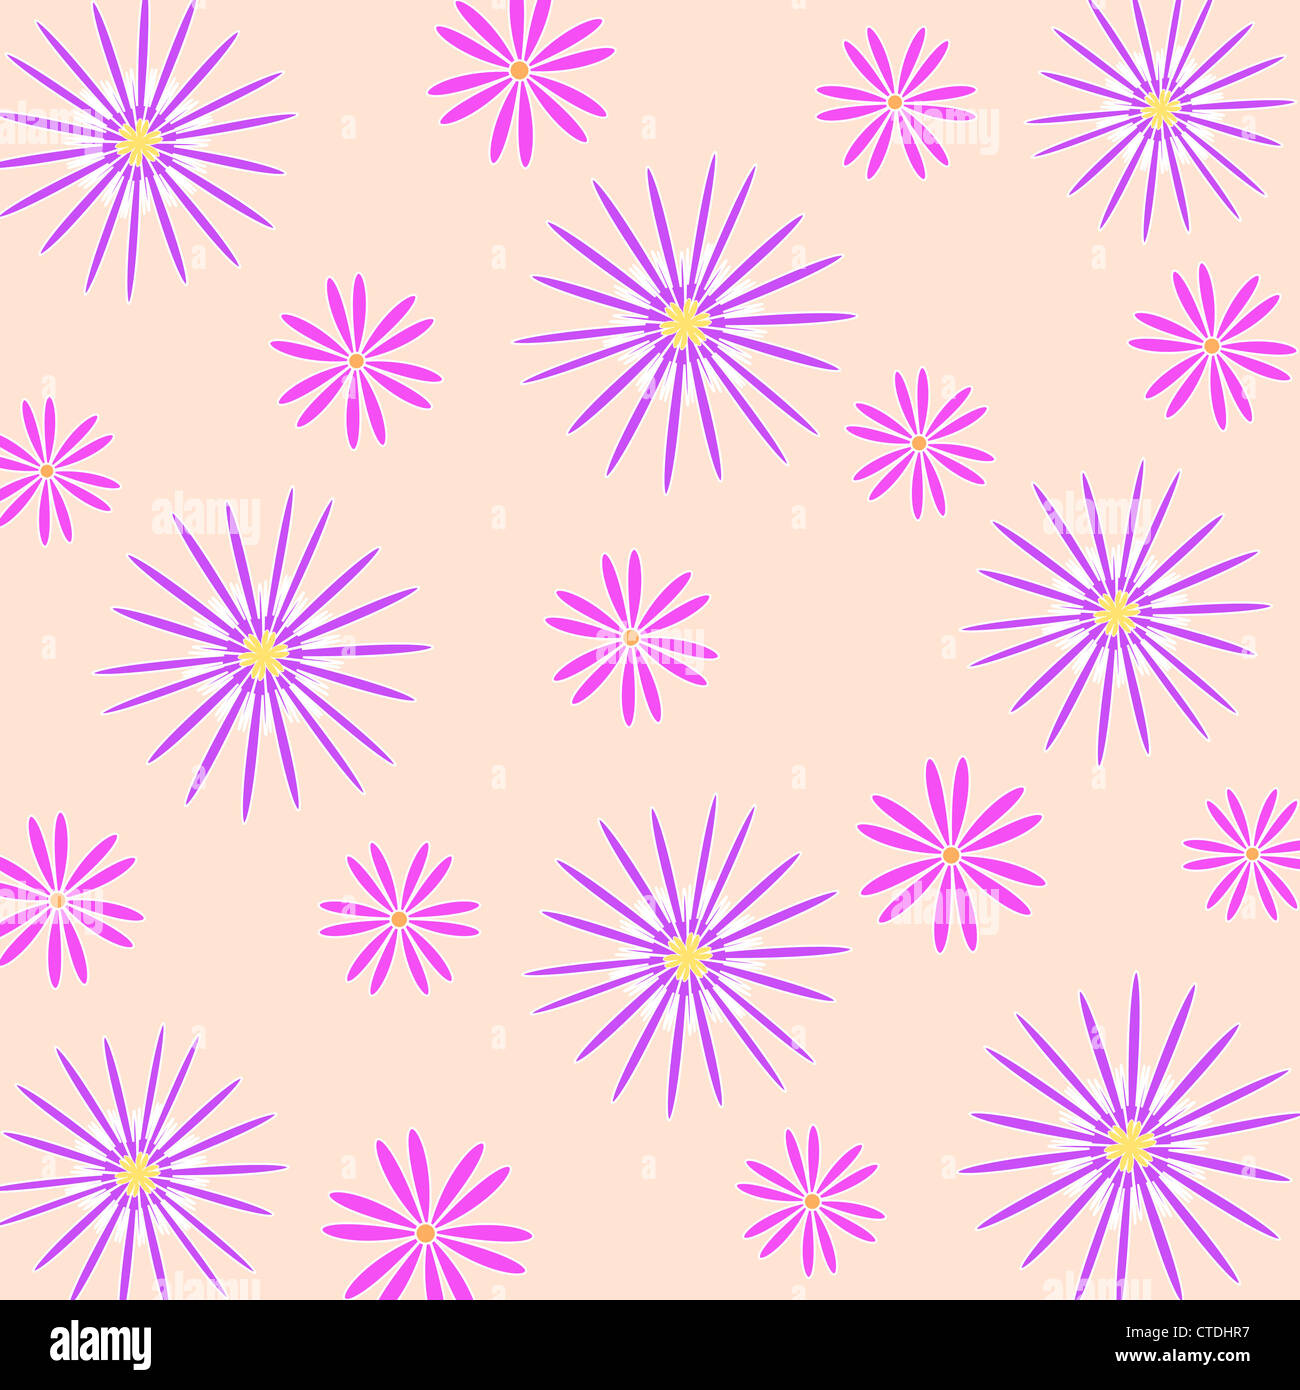 Seamless floral pattern in violet and purple Stock Photo